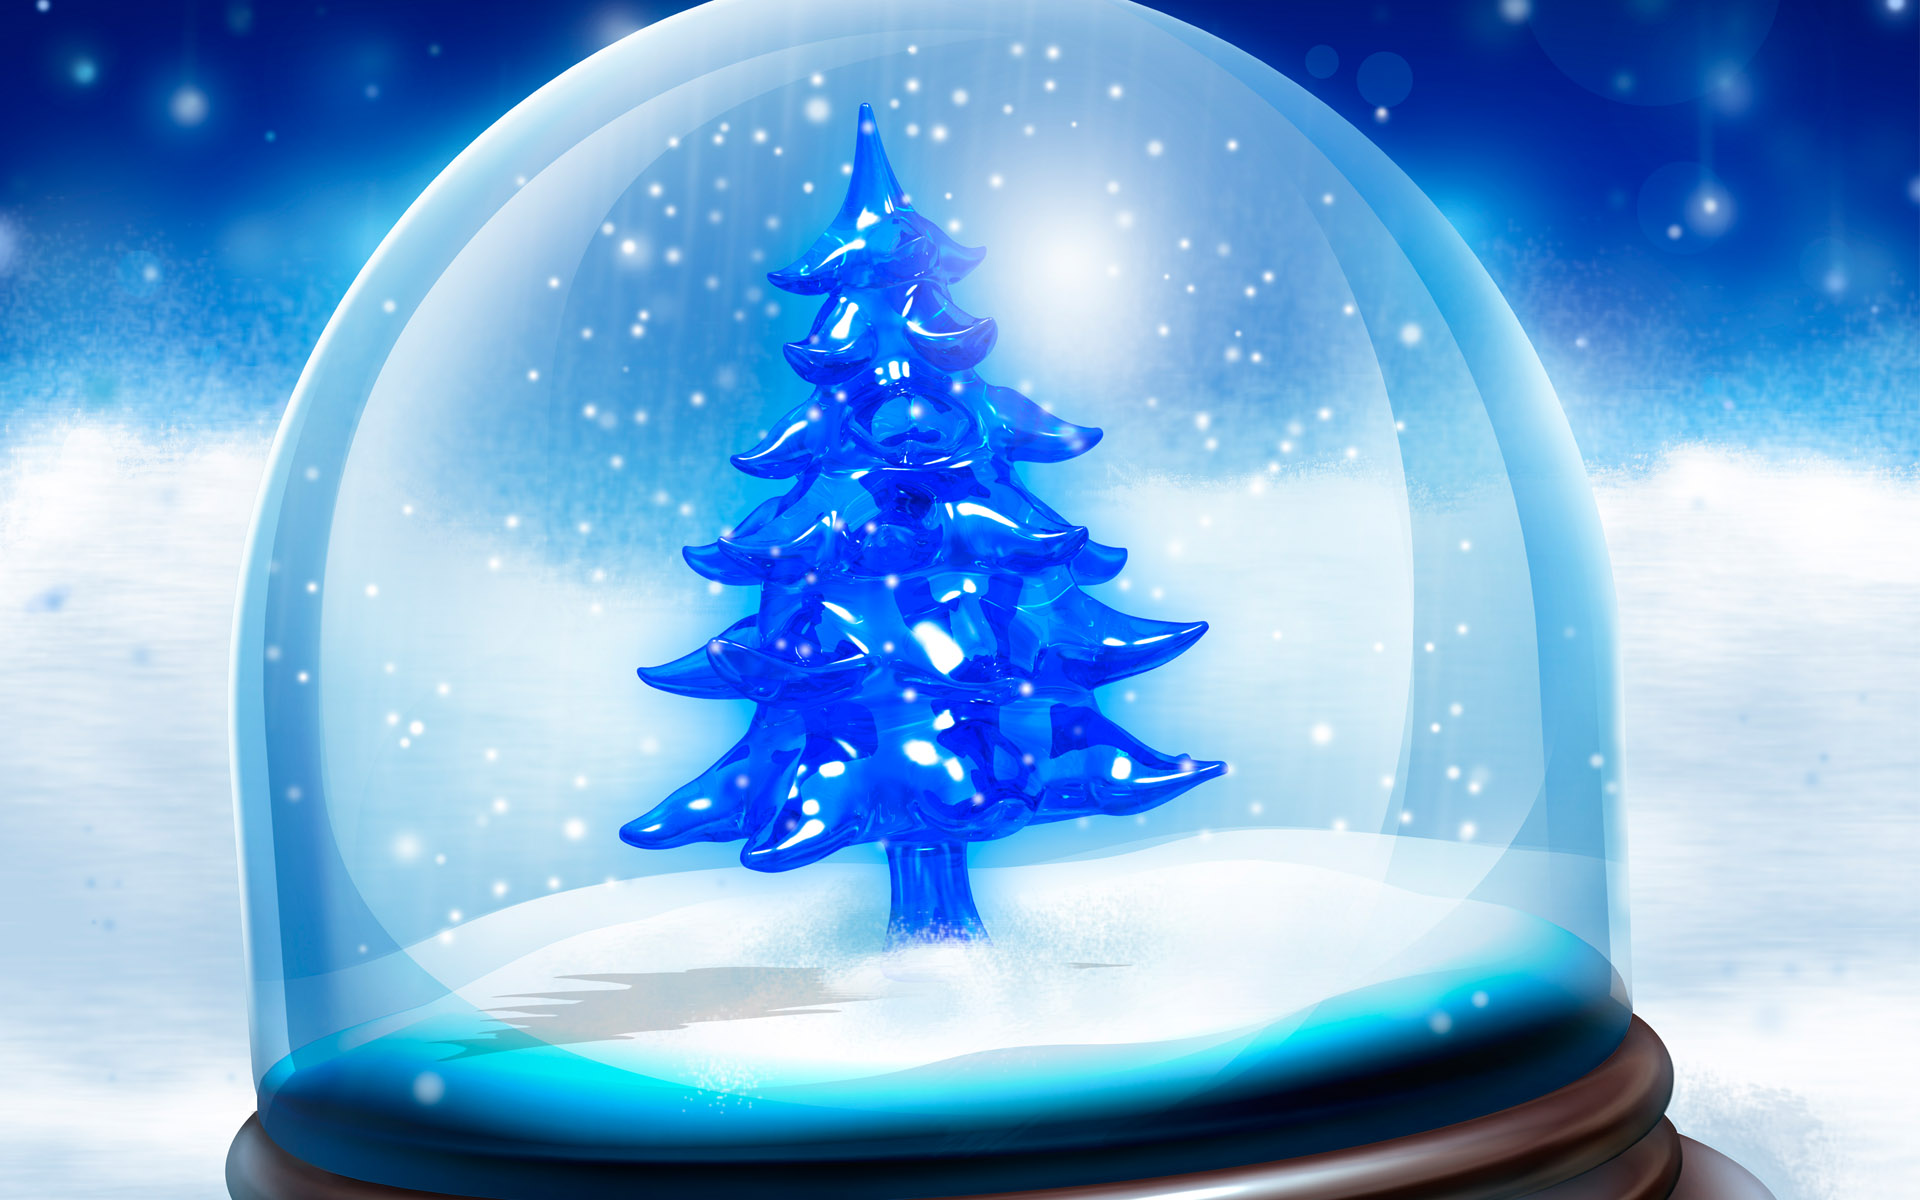 3d Christmas Tree Wallpapers 3d Christmas Tree Backgrounds 1920x1200